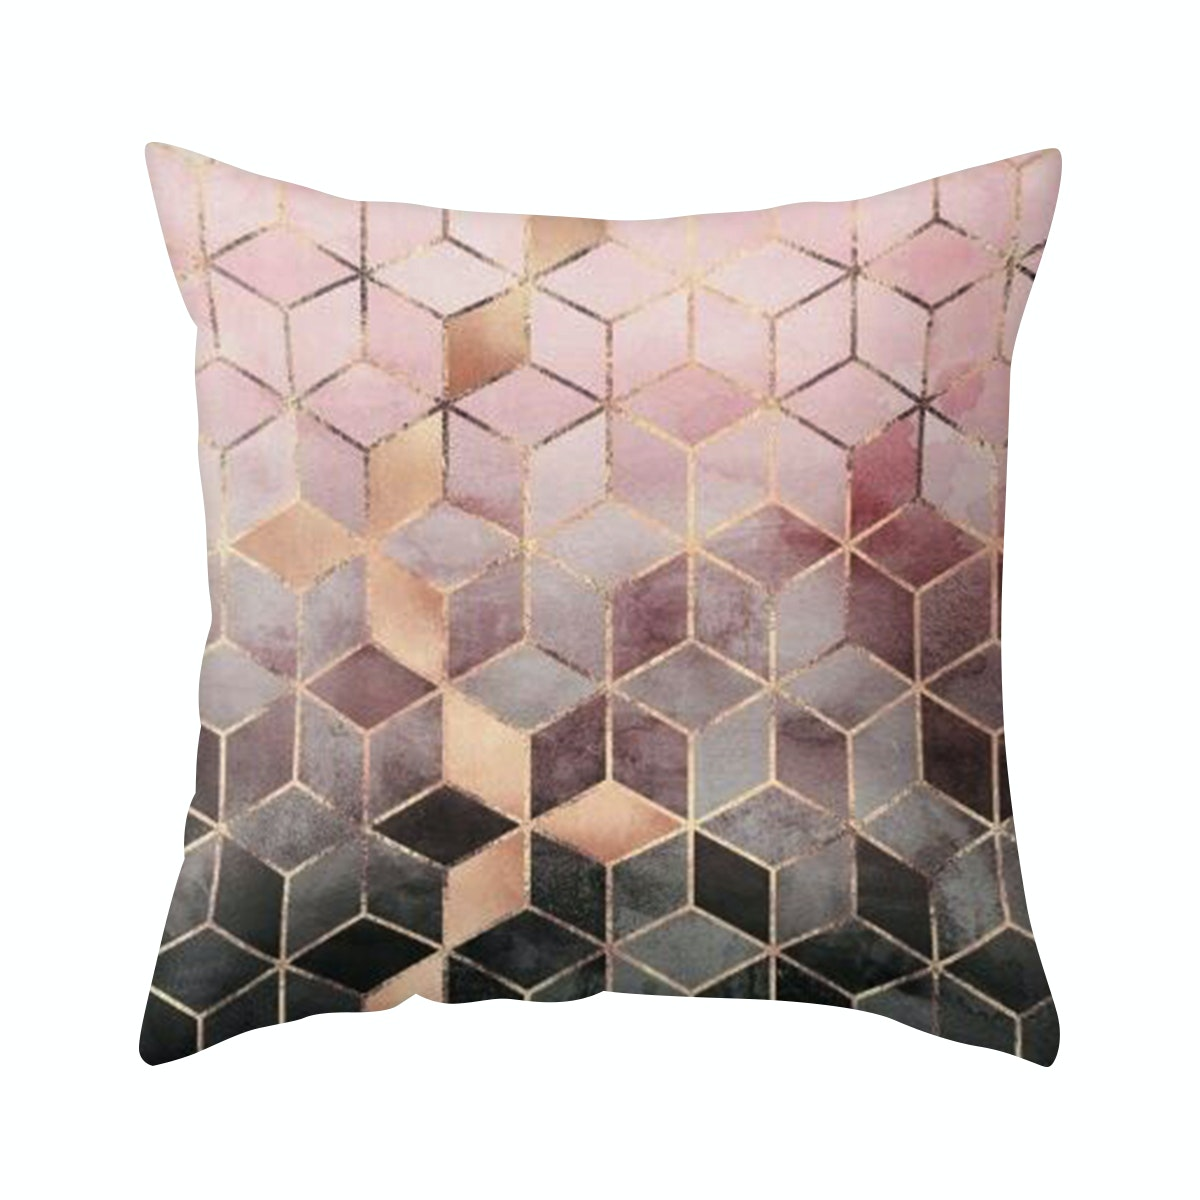 Megallery Cover Cushion NEWP28 40x40cm